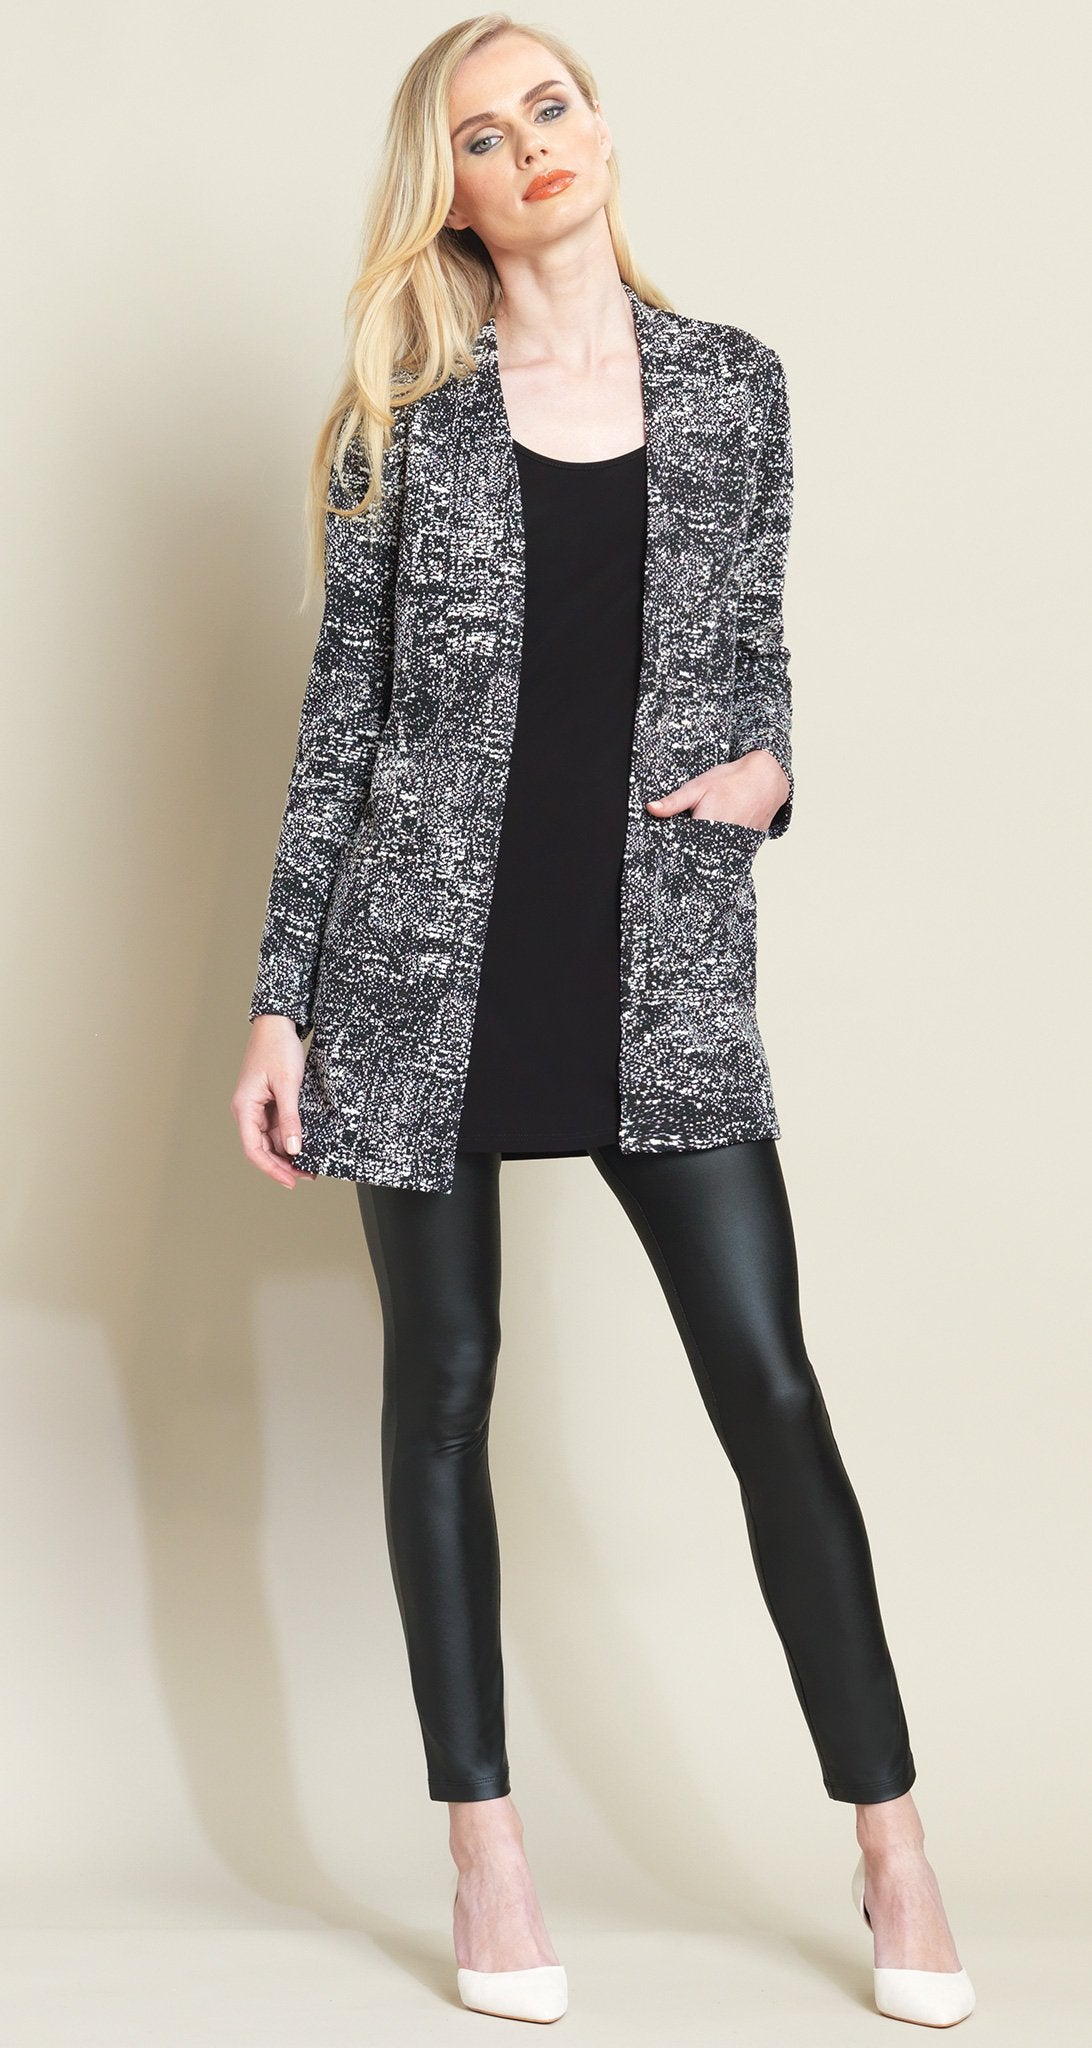 Tweed Print Jacquard Pocket Cardigan - White/Black - Limited Sizes!